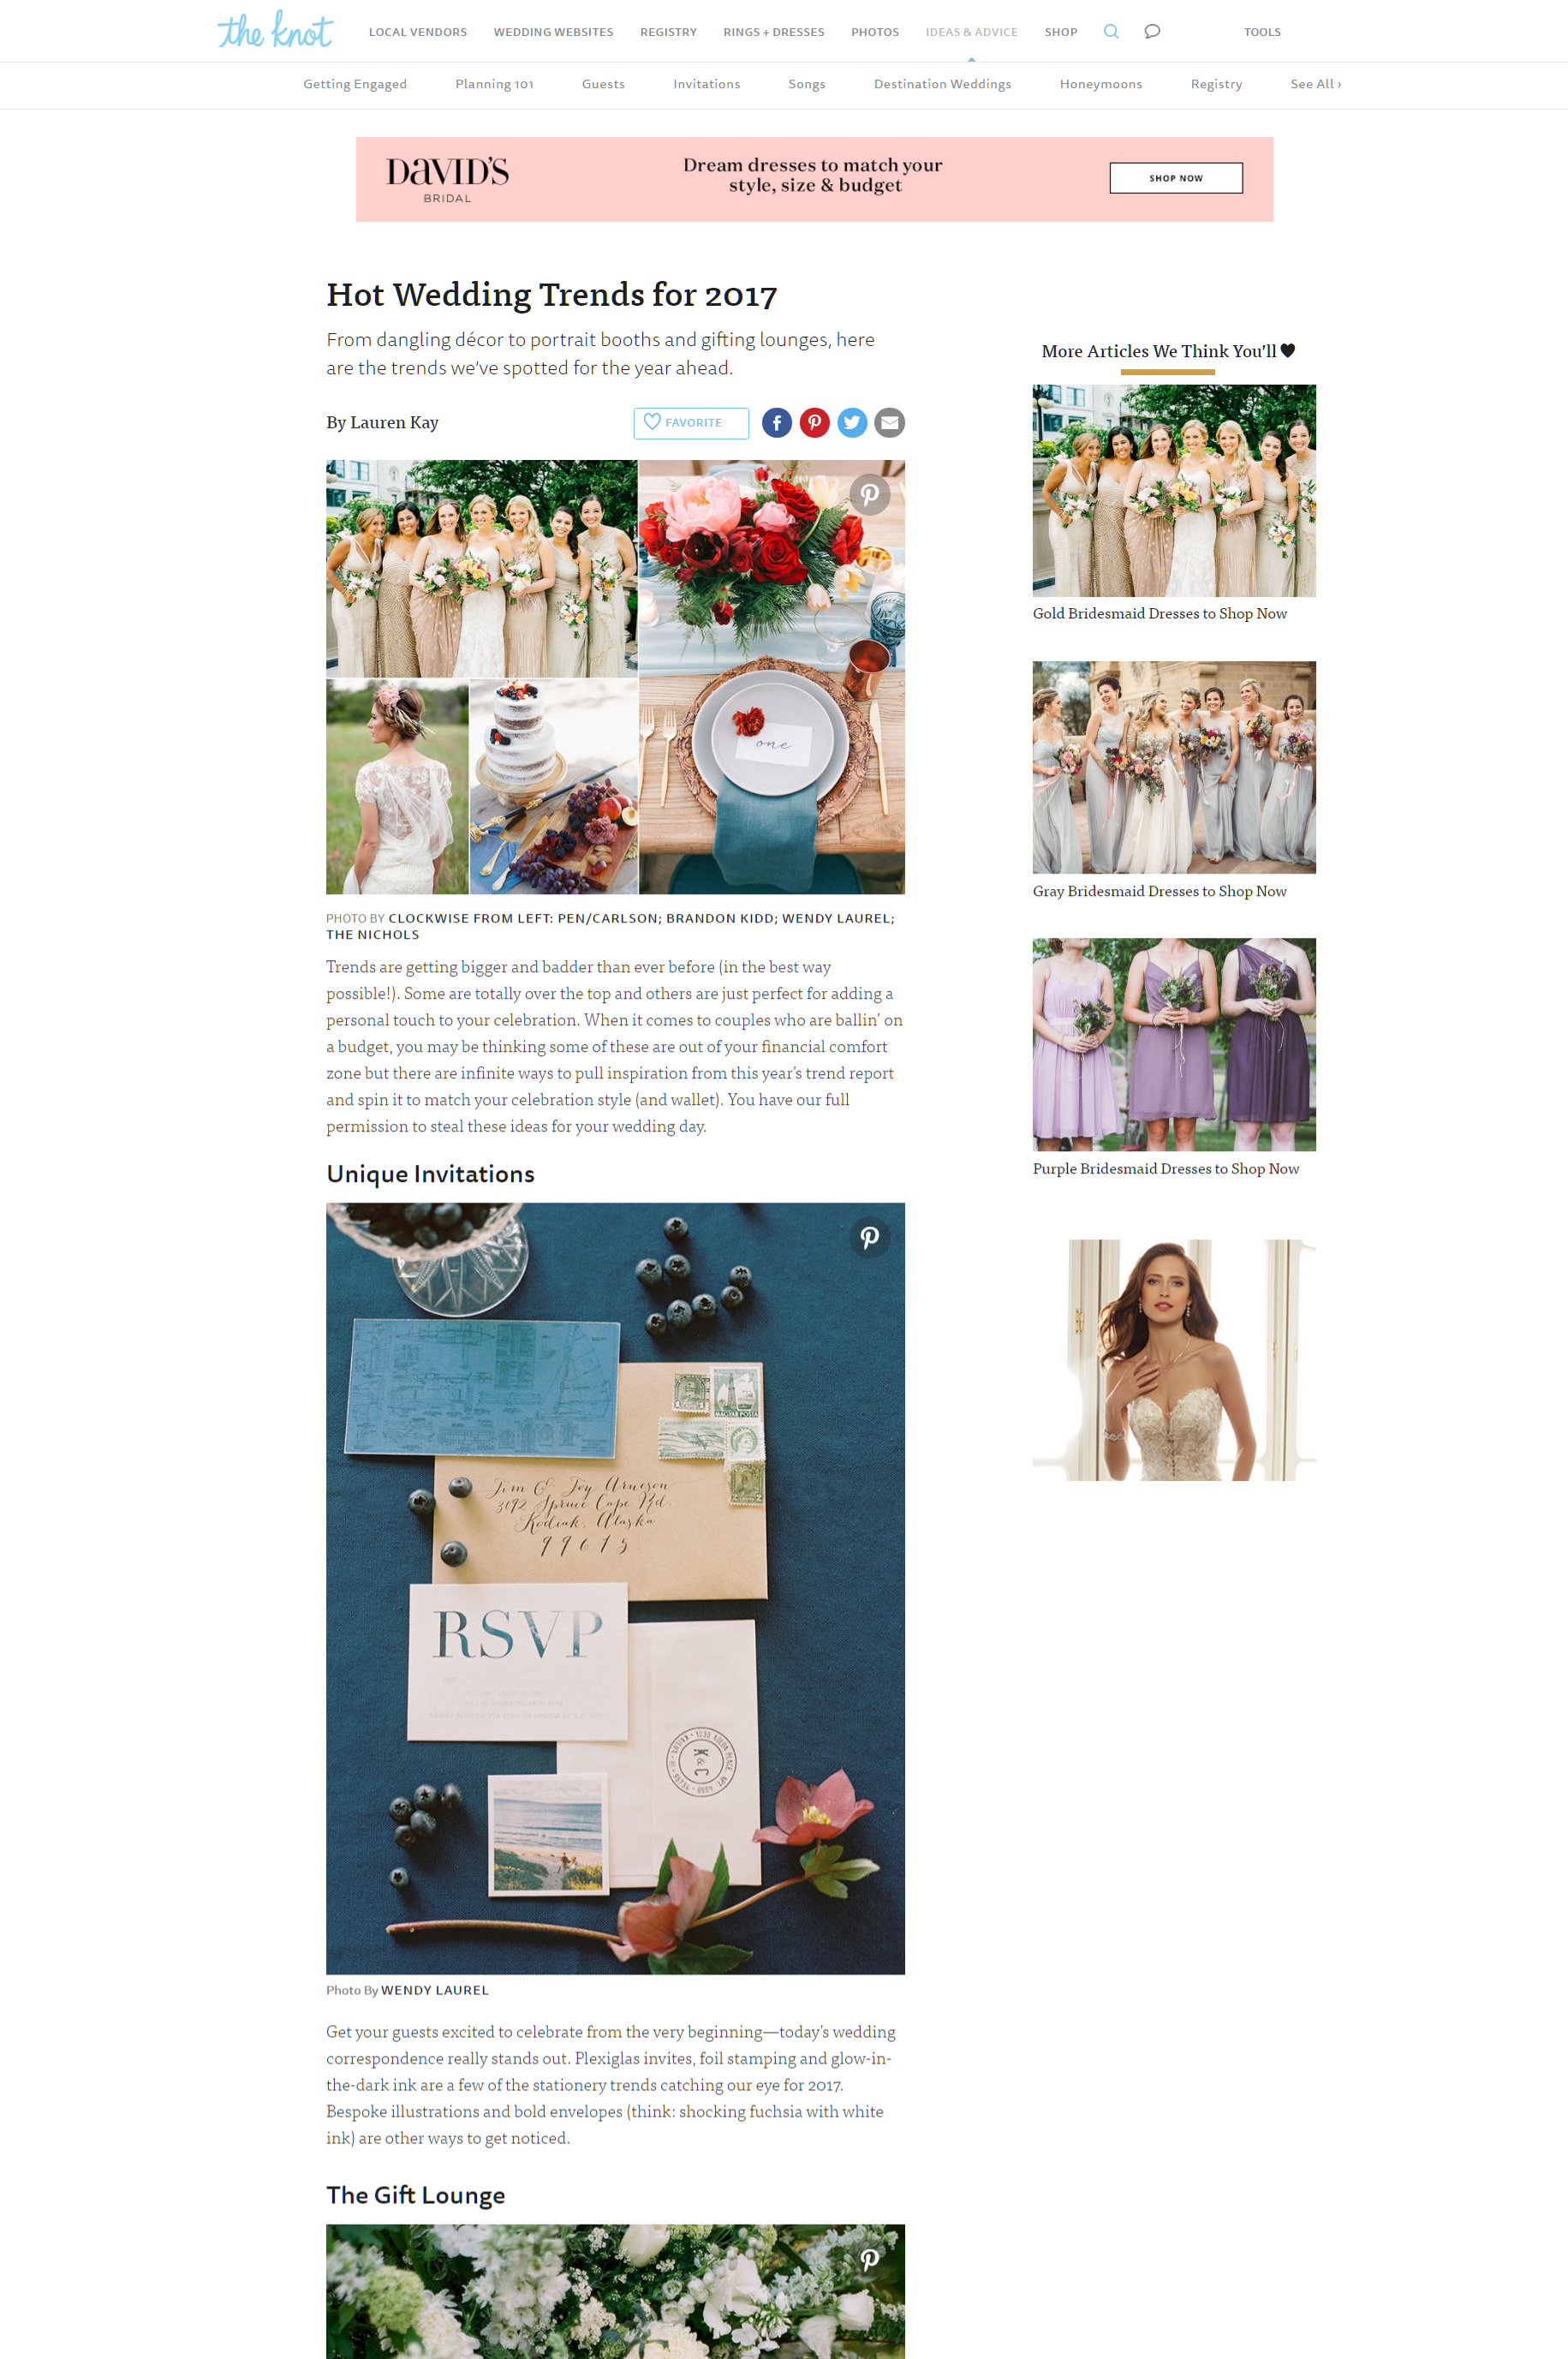 Hot Wedding Trends for